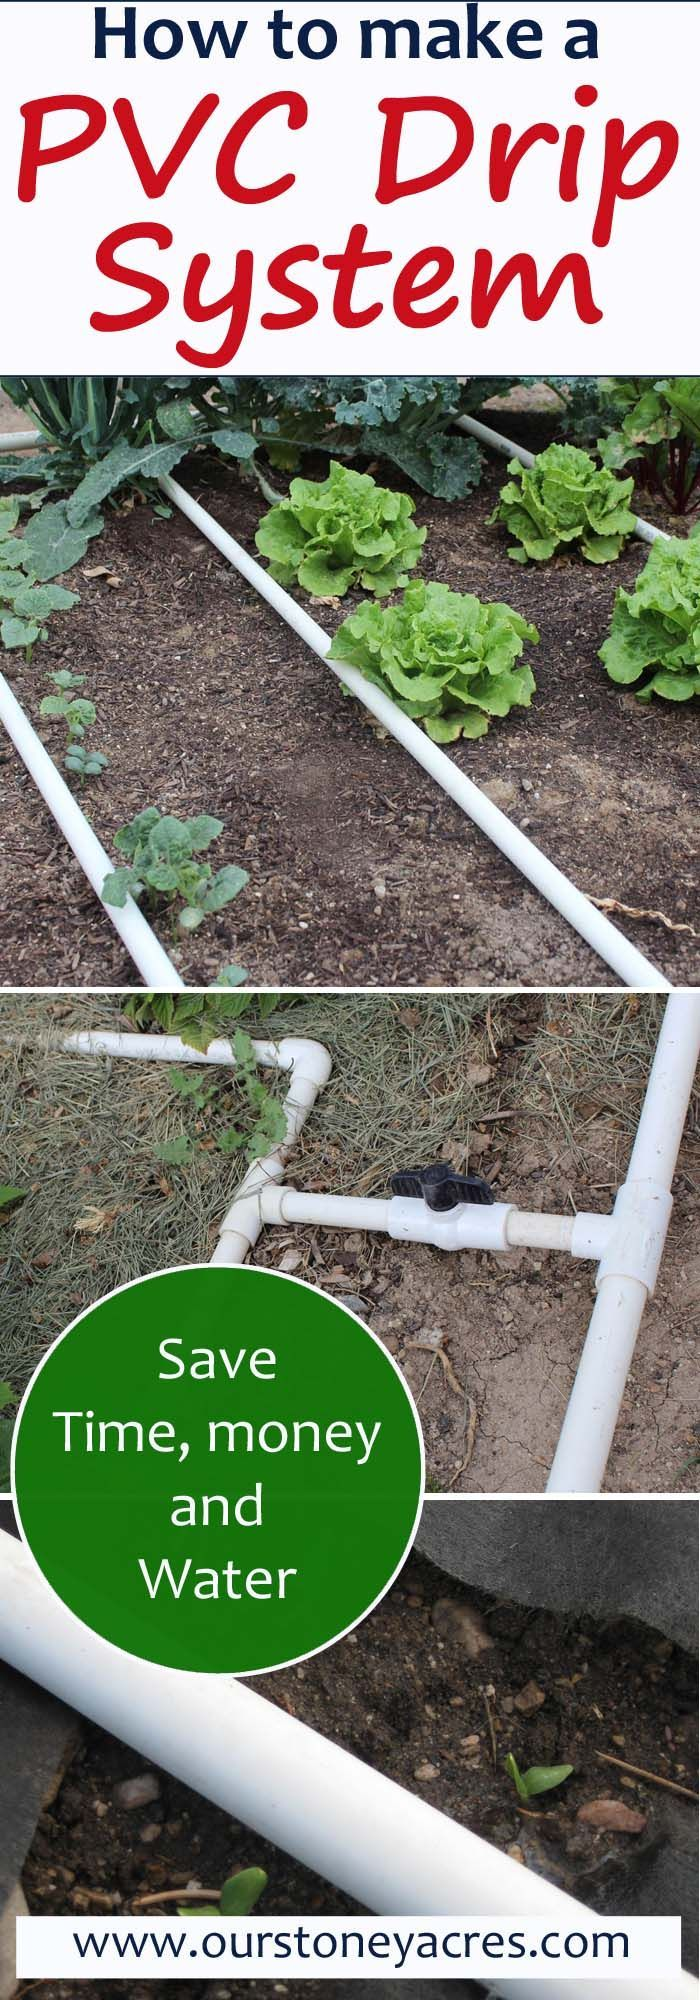 Pvc Drip Irrigation System For Your Garden Diy Projects